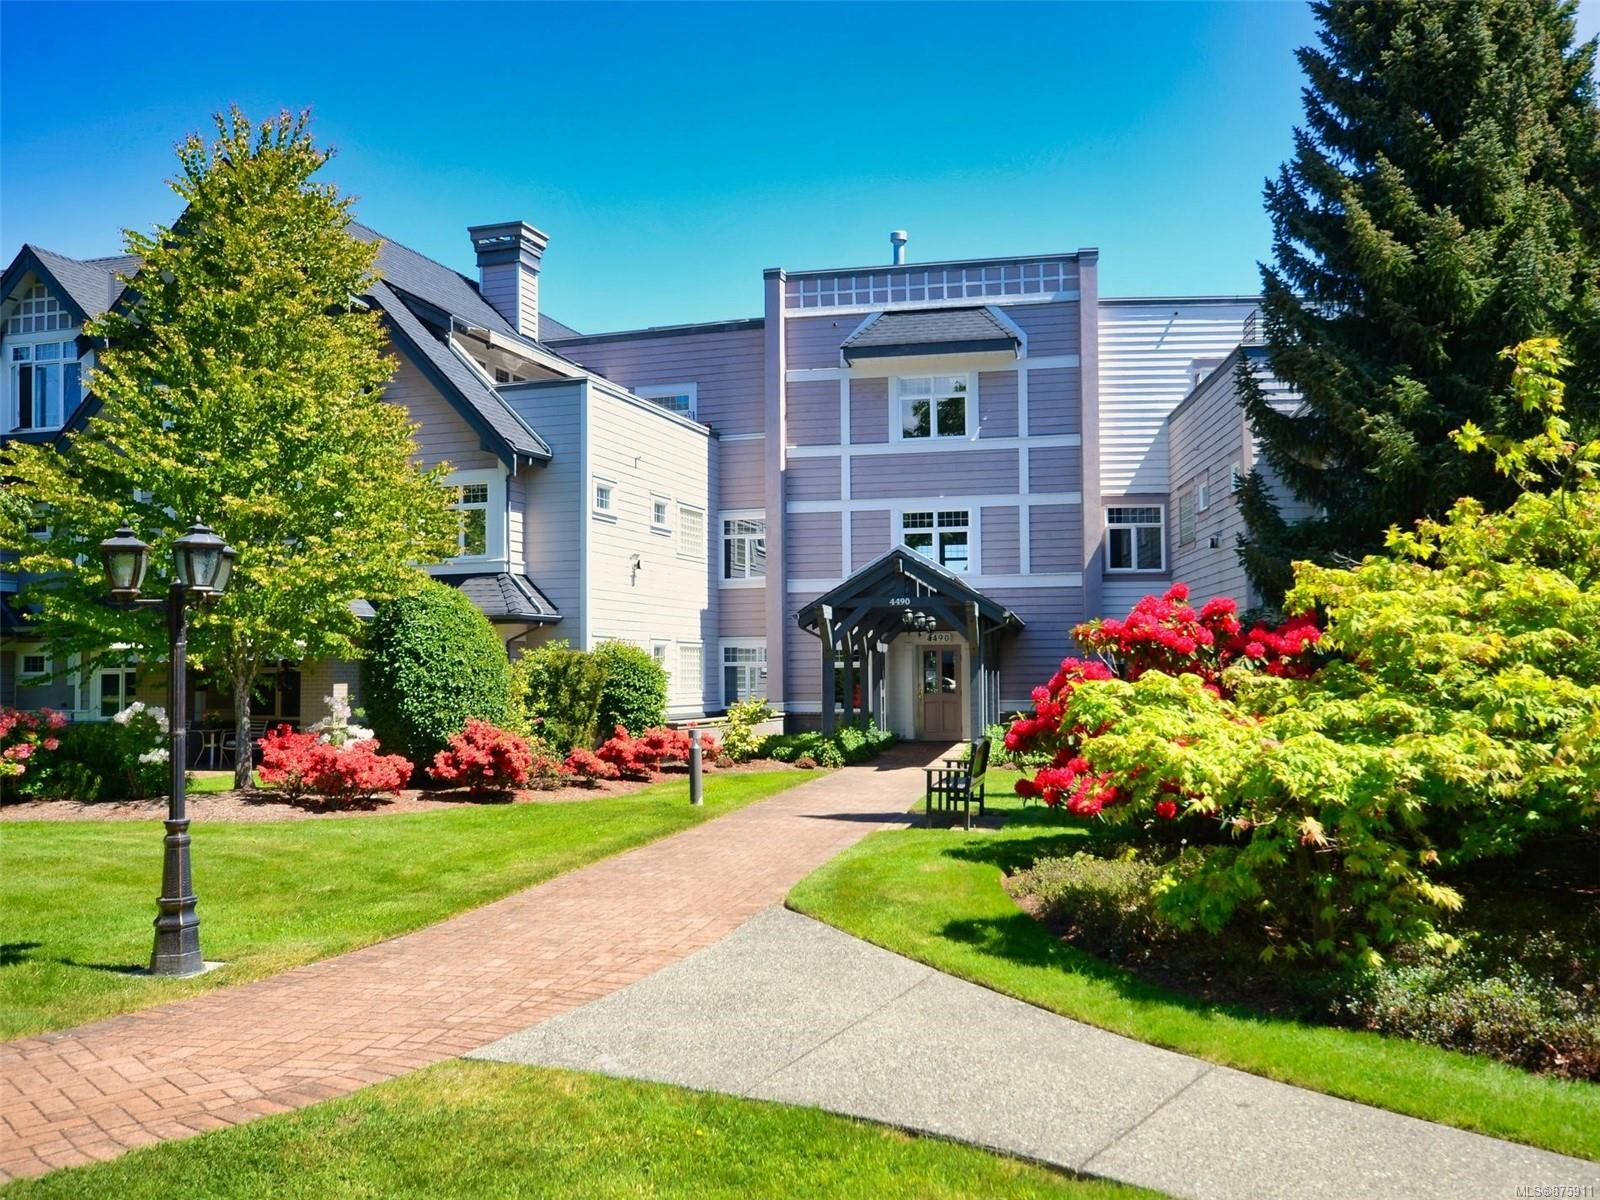 Main Photo: 112 4490 Chatterton Way in : SE Broadmead Condo for sale (Saanich East)  : MLS®# 875911